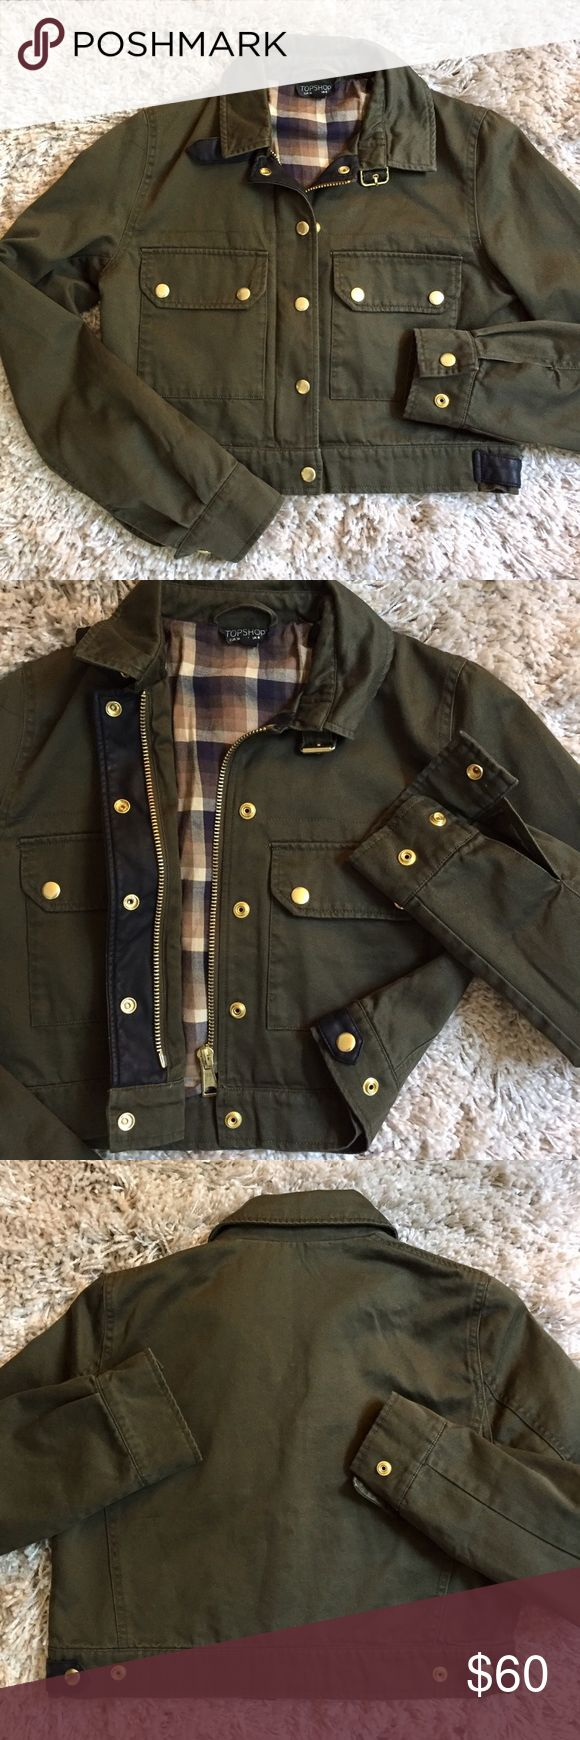 🇺🇸 SALE 🇺🇸 Topshop Military Cropped Jacket + Worn once, great condition. + Plaid lining 🍂🍃 Perfect for fall!  + Gold buttons and zipper accents  + Two front pockets  + Buckle collar    + Don't forget to bundle with other Topshop items  ⭐️All items are steamed cleaned and shipped within 48 hours of your purchase. ⭐️If you would like any additional photos or have any questions please let me know. ⭐️Sorry, no trades. But will listen to ALL fair offers. Thanks for shopping! Topshop Jackets…